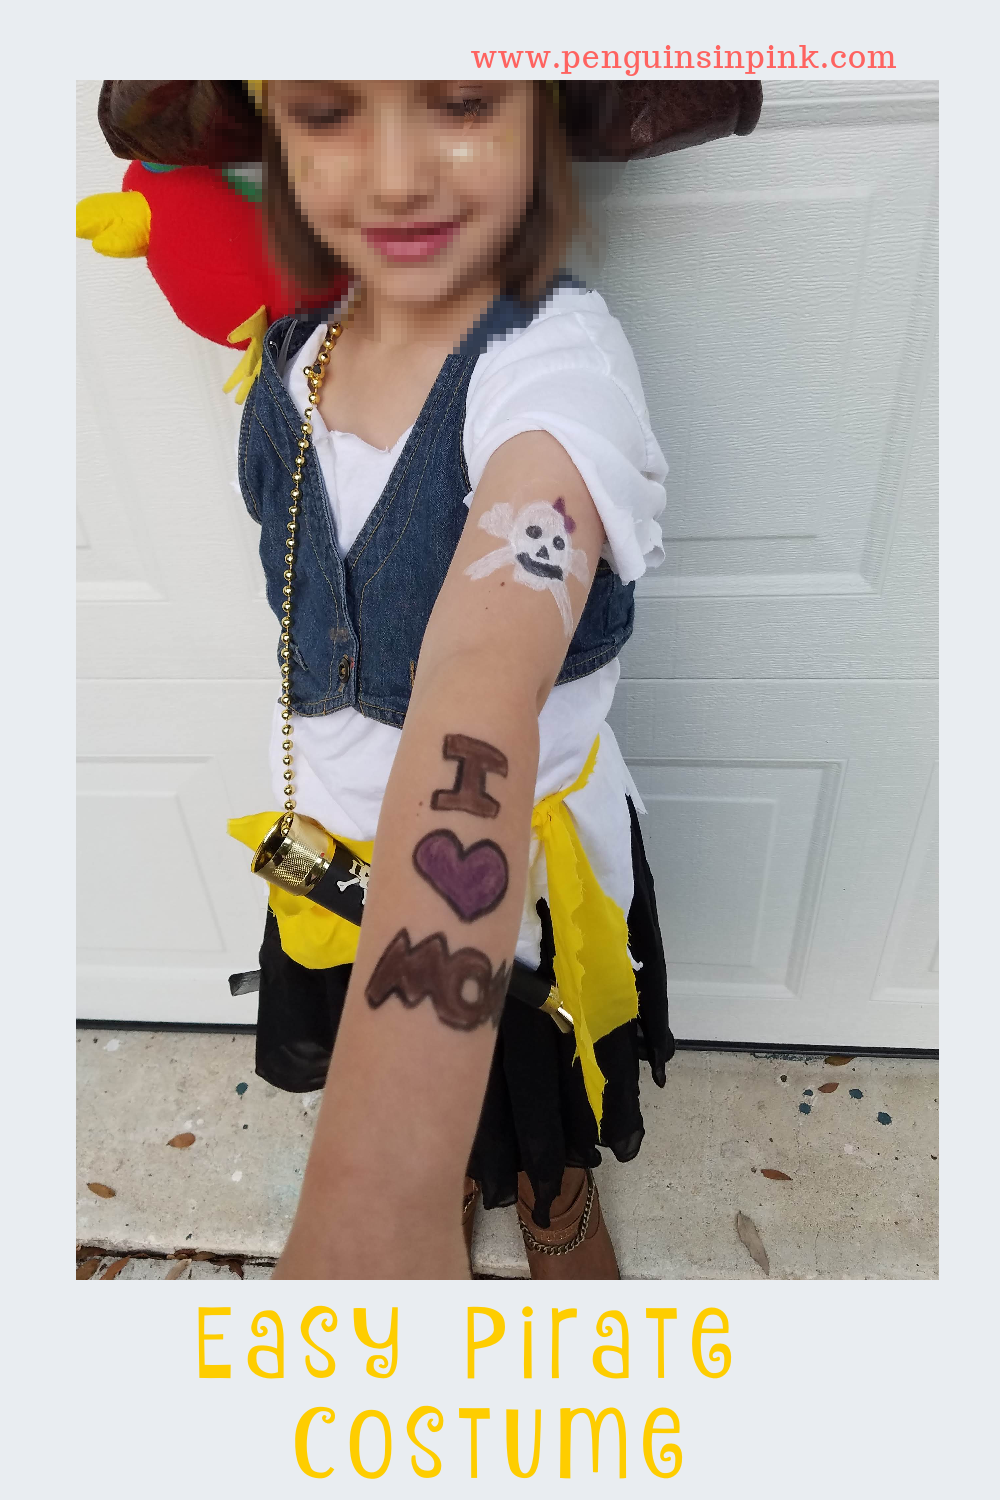 This easy pirate costume is super cute and easy to make. It can easily be made into an adult or children's costume. The base of the costume is made with items you probably have on hand like t-shirt, skirt or pants, and boots.